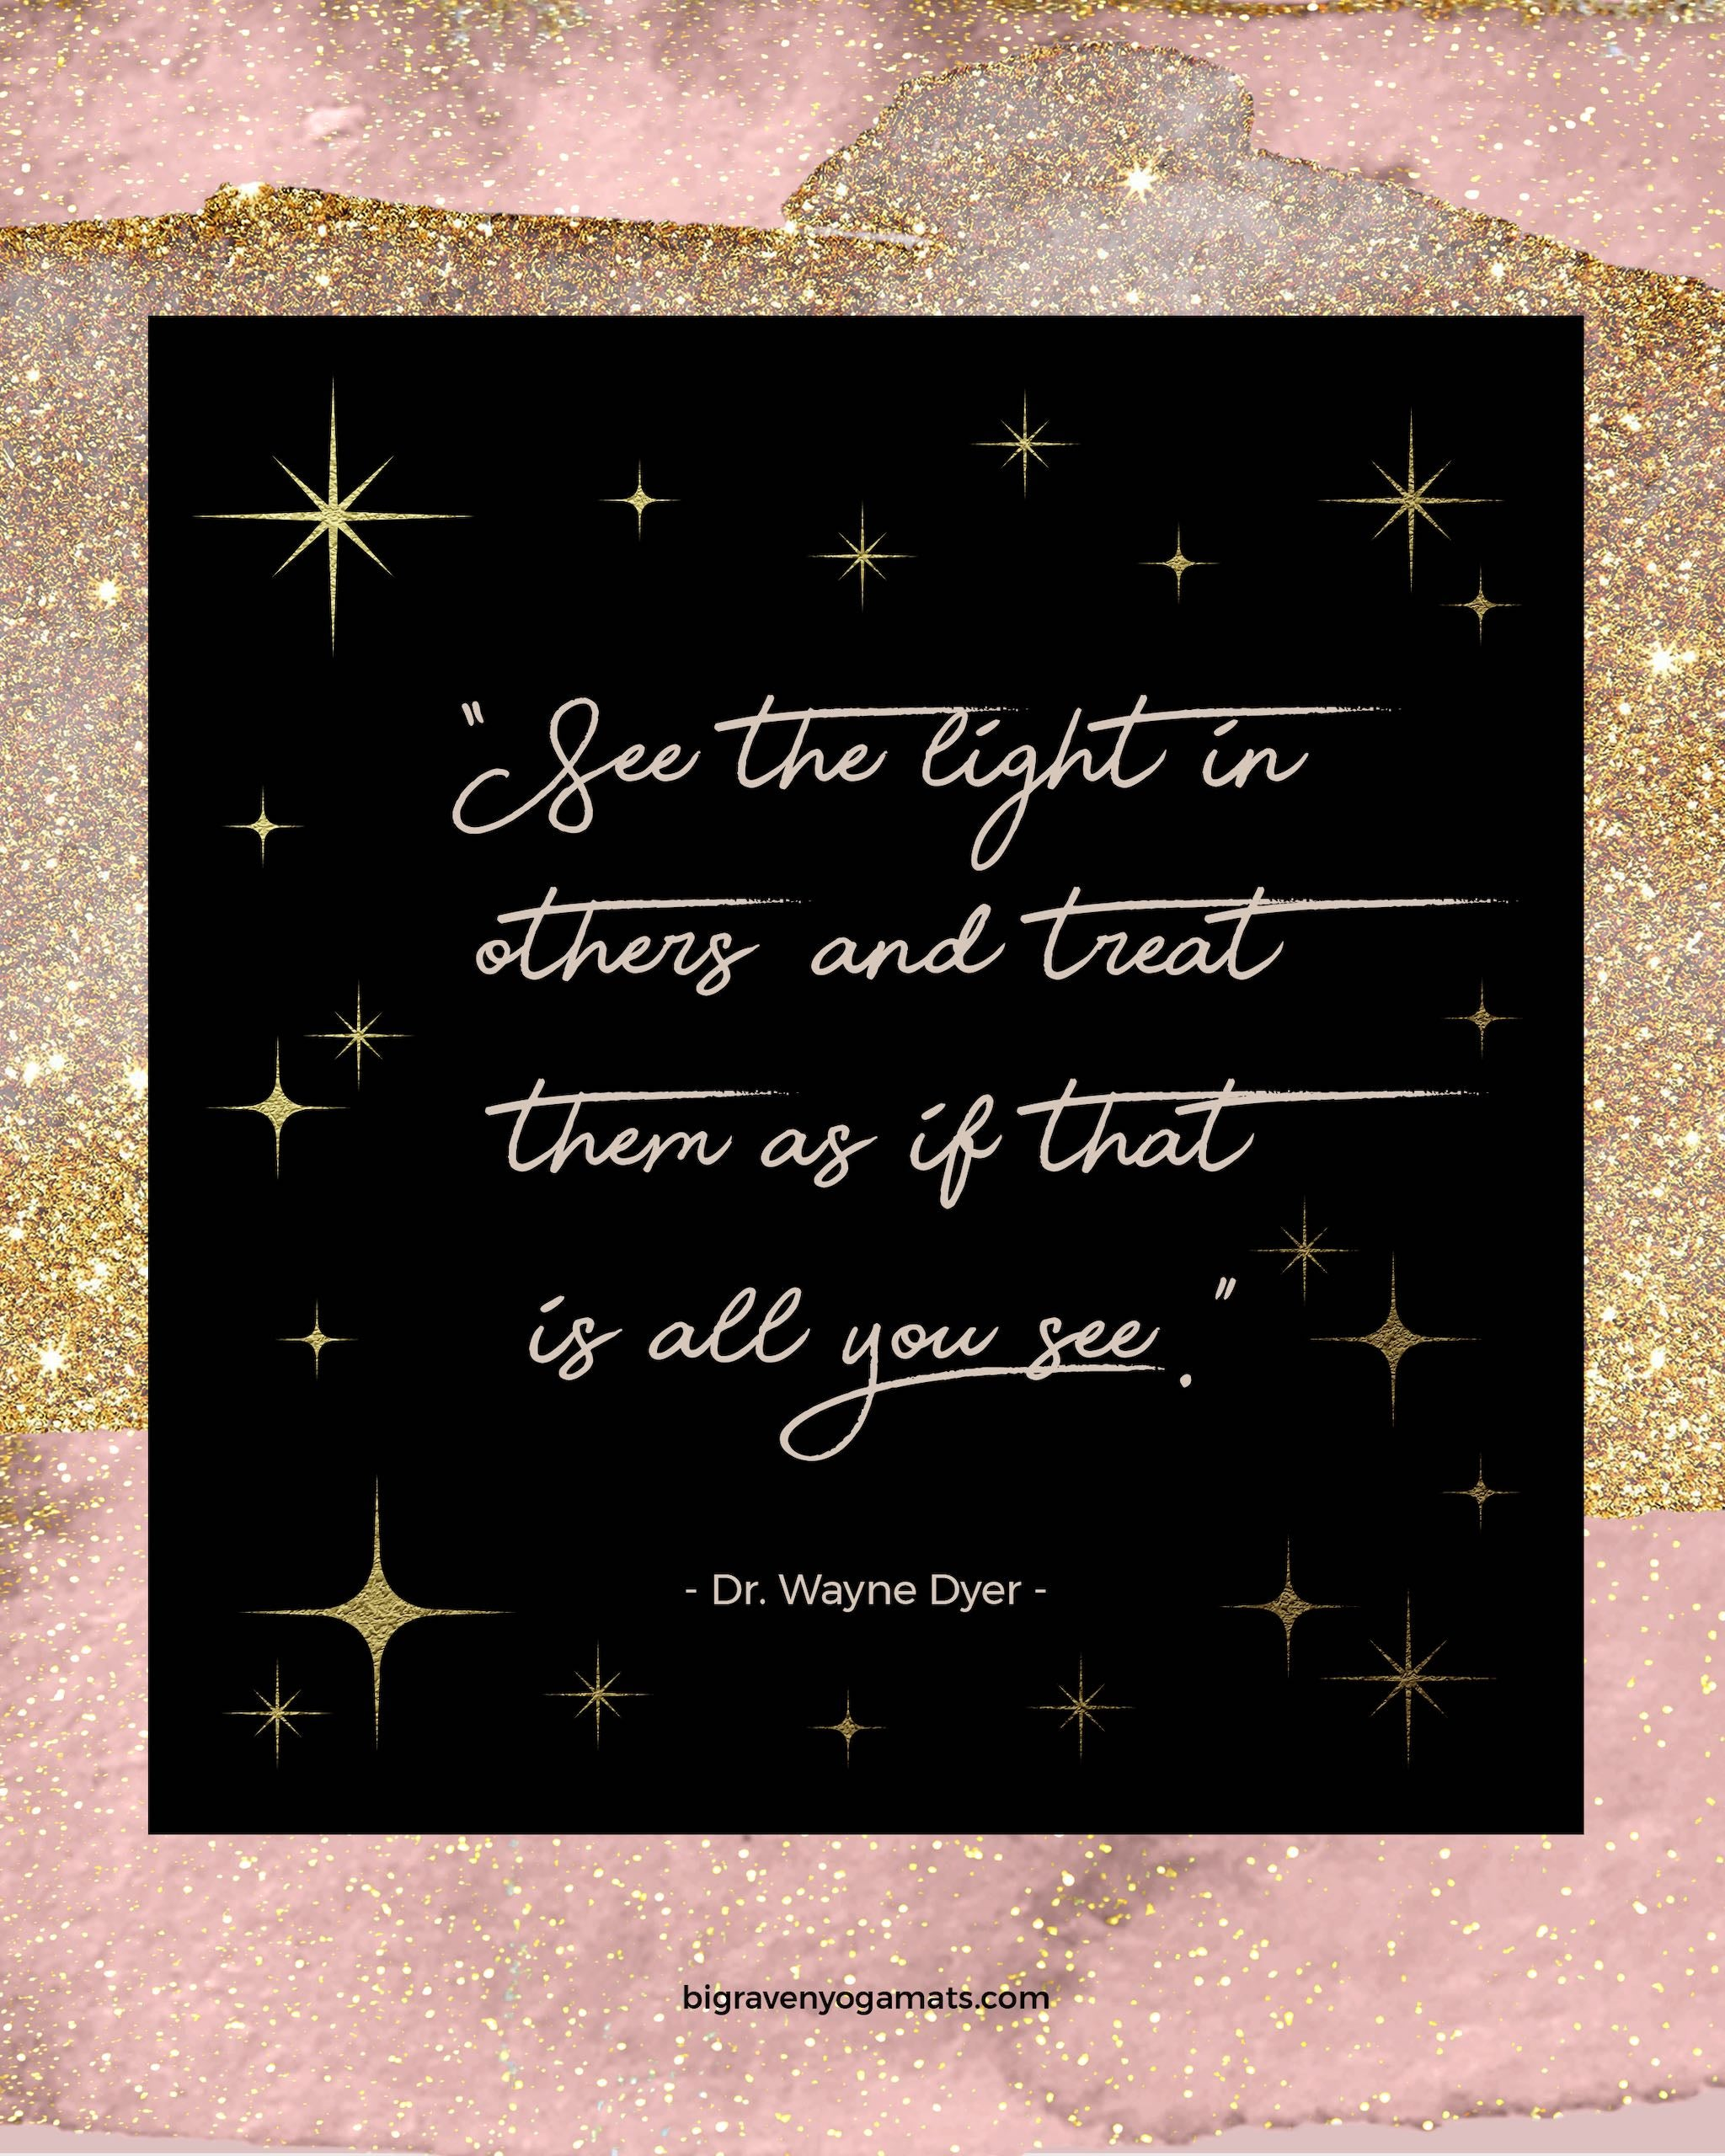 Quote: See the light in others, and treat them as if that is all you see. Dr. Wayne Dyer